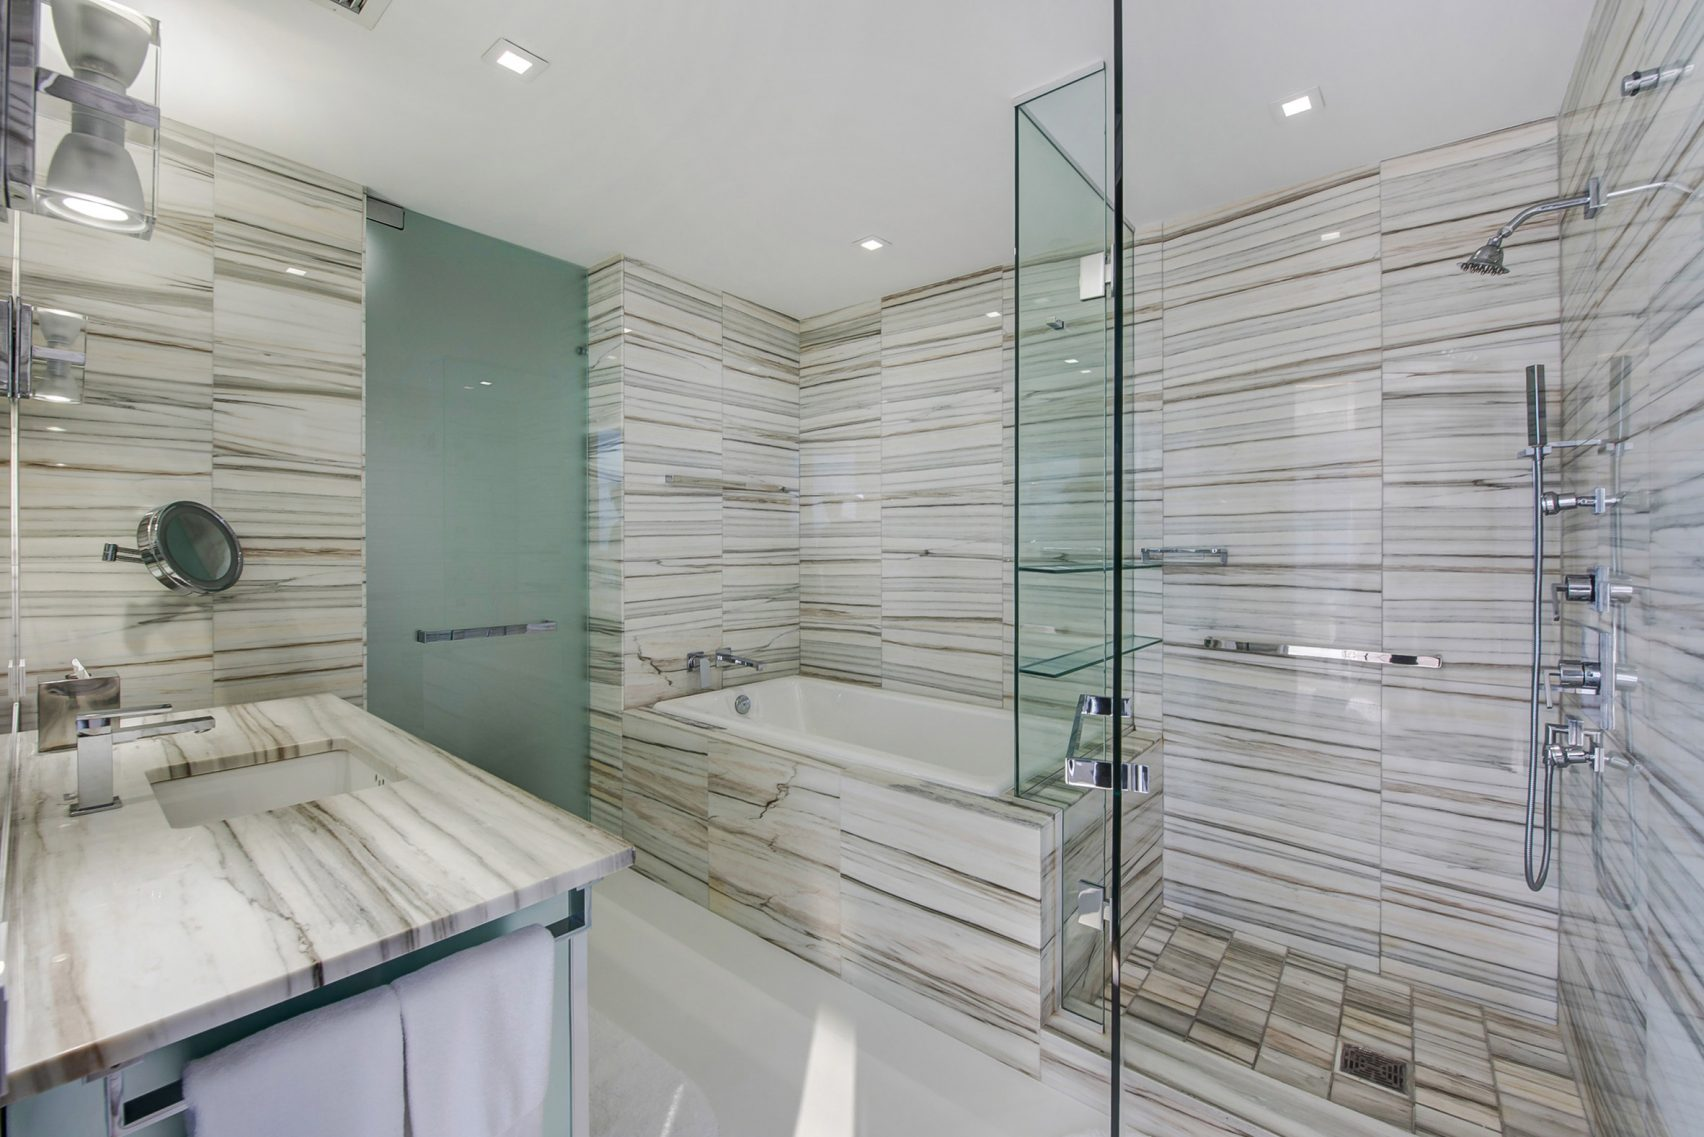 design, luxury, penthouse, american, miami, modern, zaha hadi, beach, architect, villa, billionaire, house, usa, bathroom